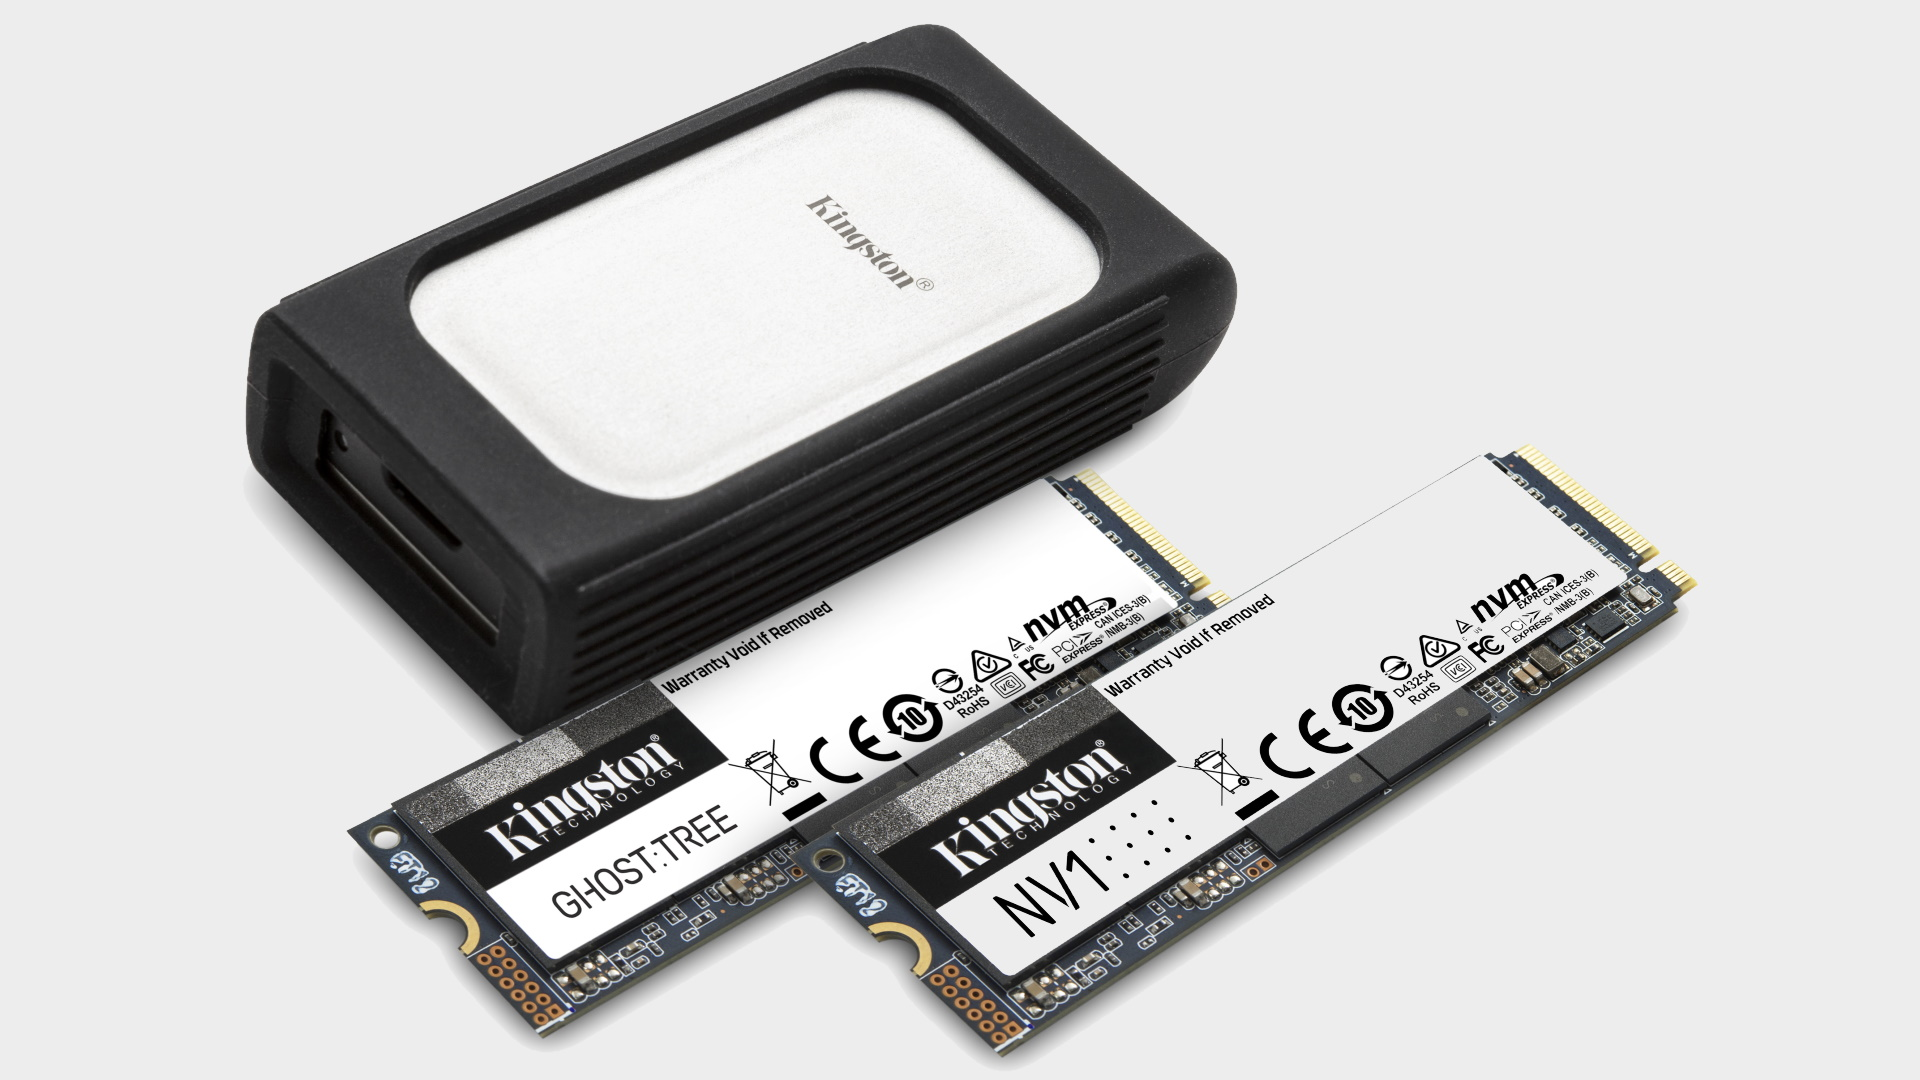 Kingston's Ghost Tree is a surprisingly cool name for a next-gen 7,000MB/s SSD